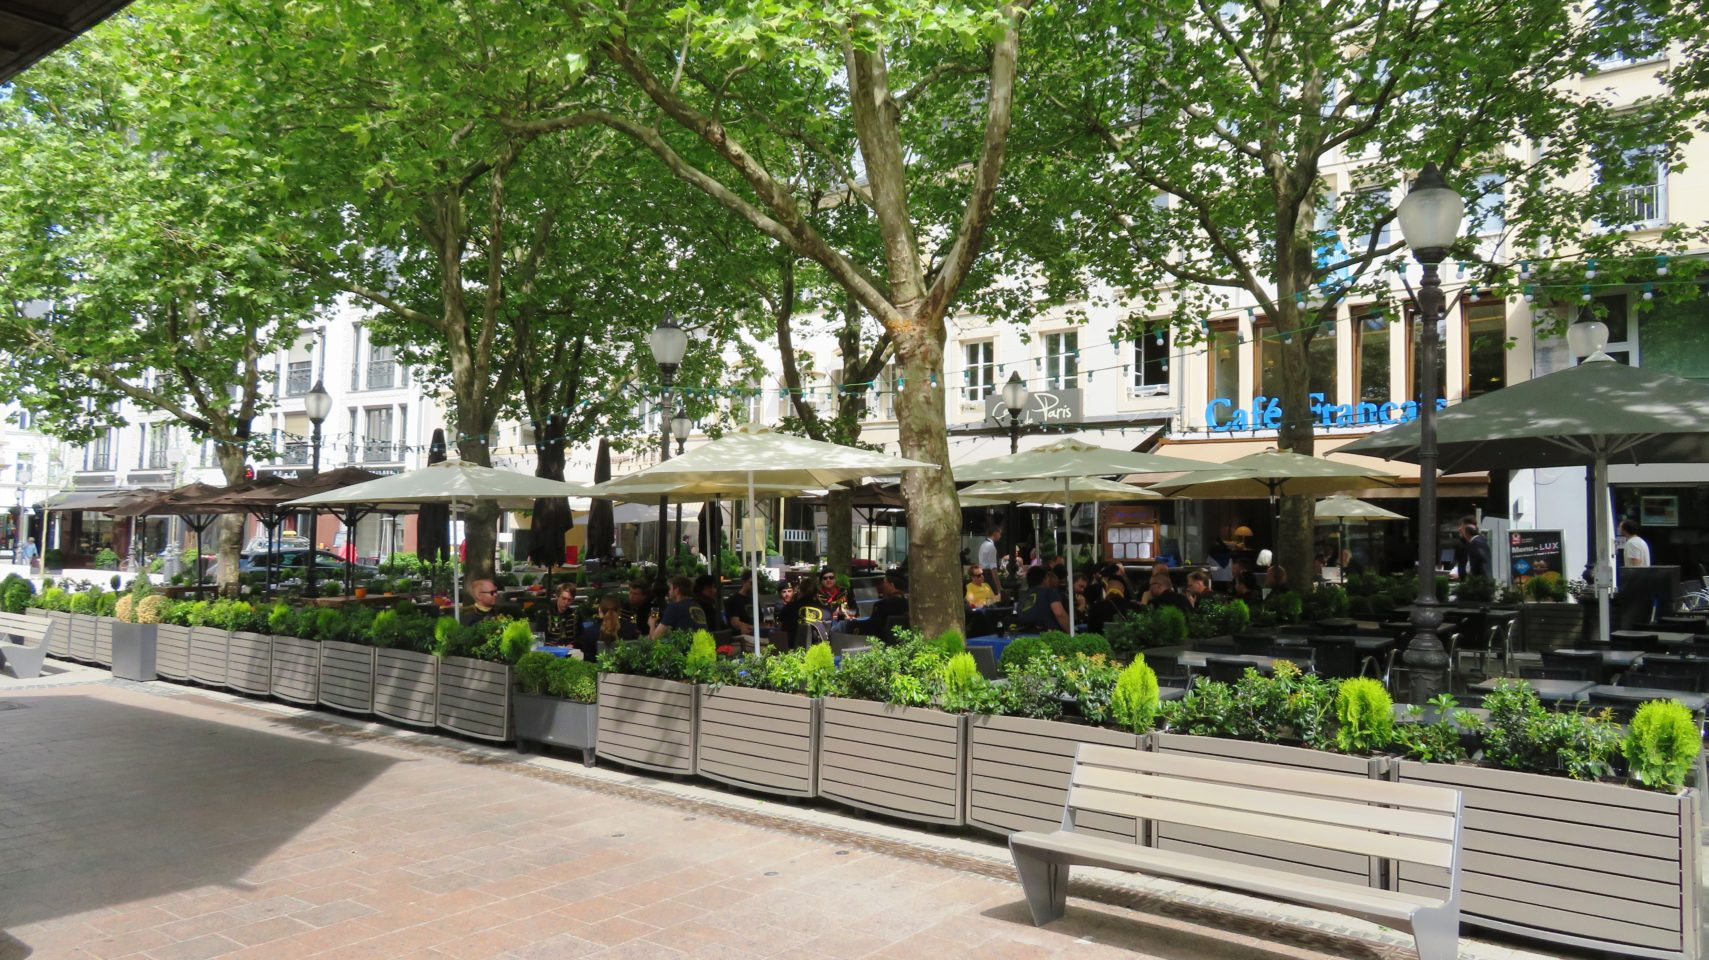 Outdoor Cafes on Place d'Armes in Luxembourg City, <em><strong>Luxembourg</strong></em>